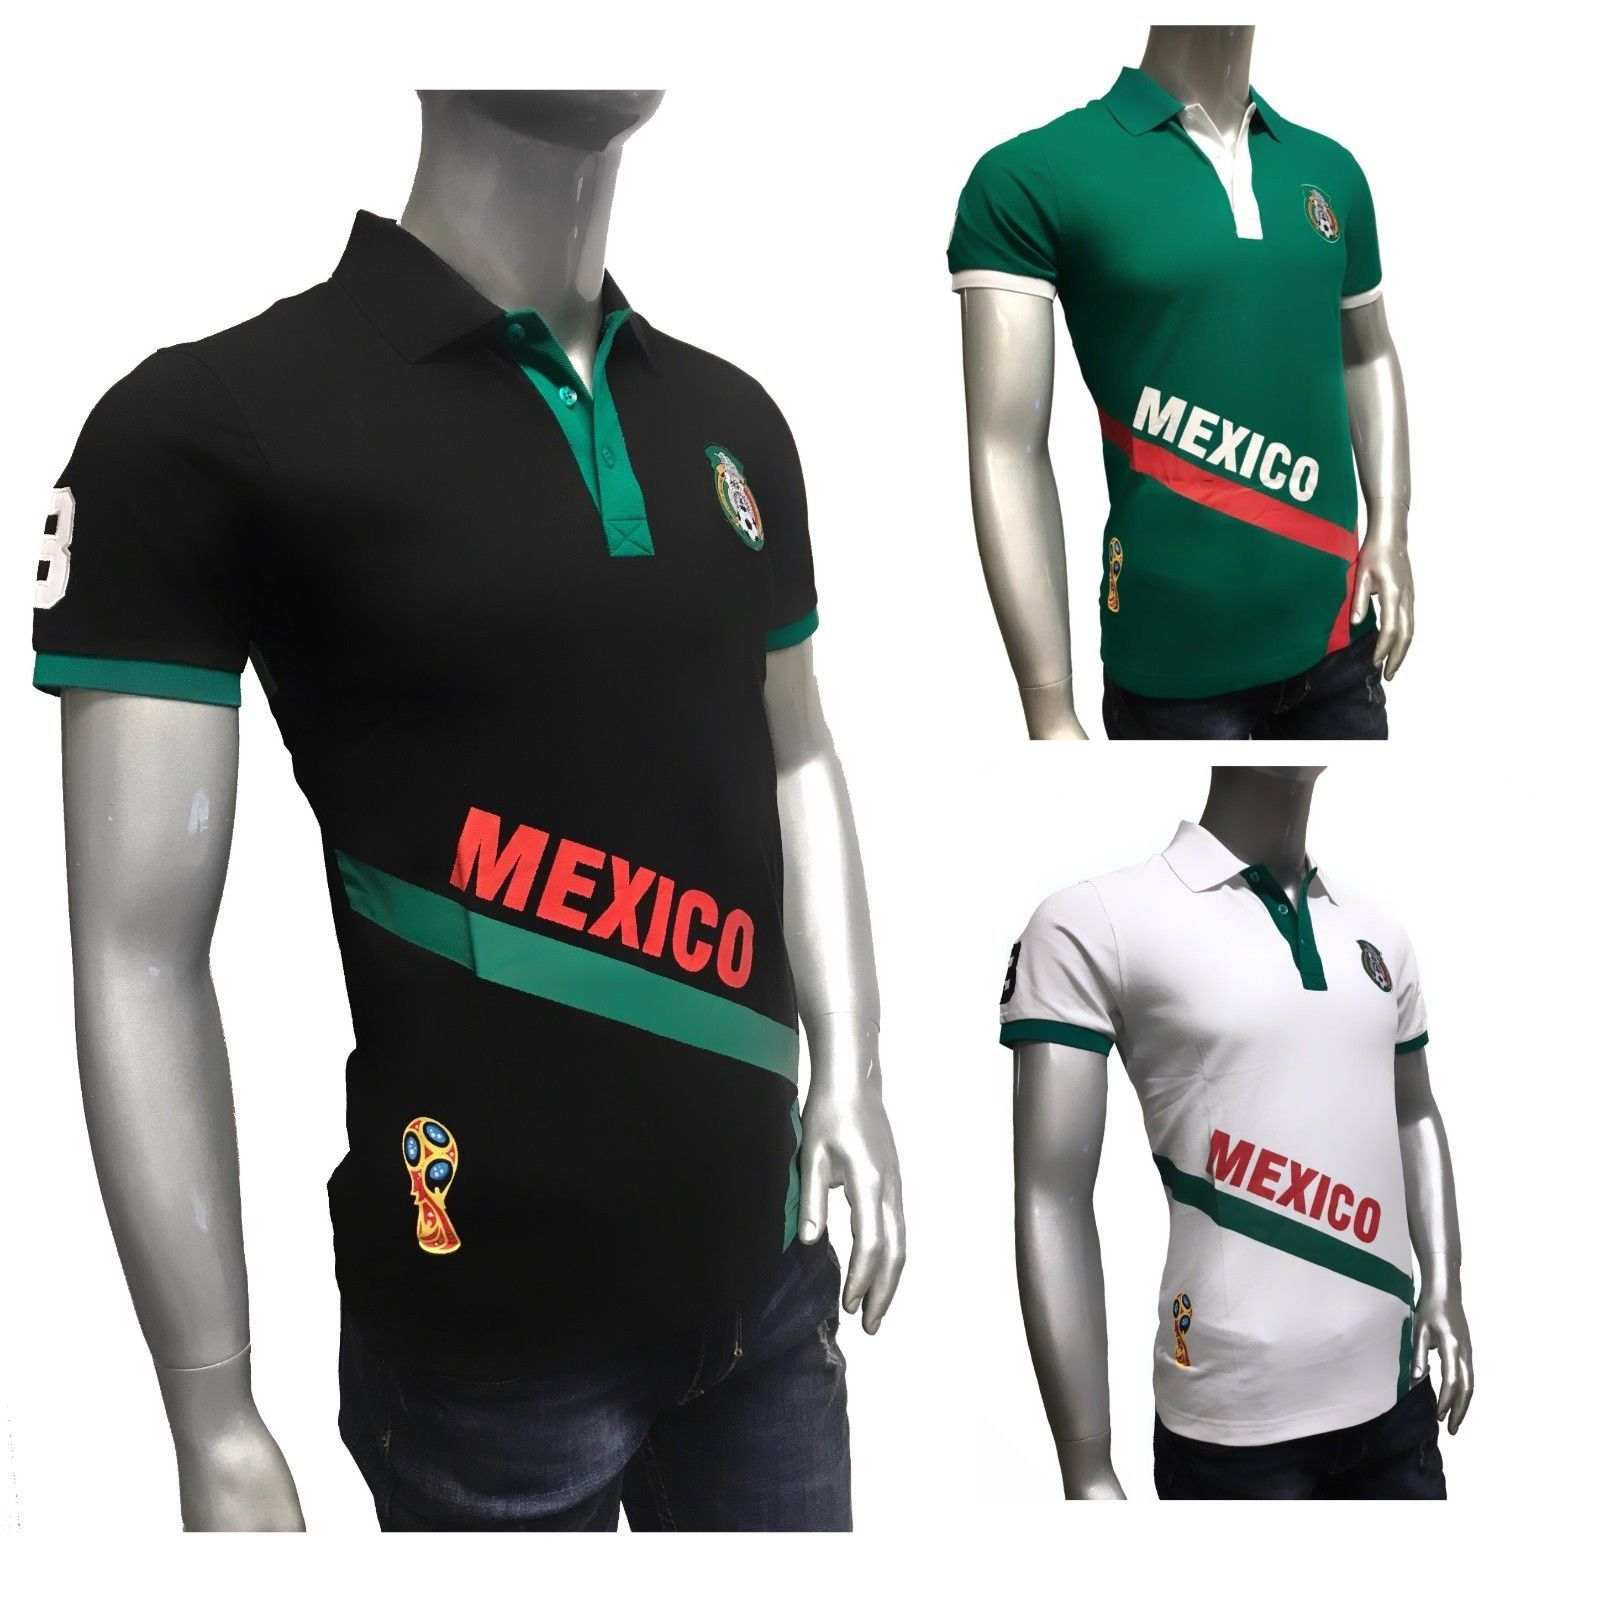 f9c3c077b98 Mexico 2018 World Cup Russia Soccer Jersey Green Mundial Rusia 2018 Polo  Shirt Discount Price 39.90